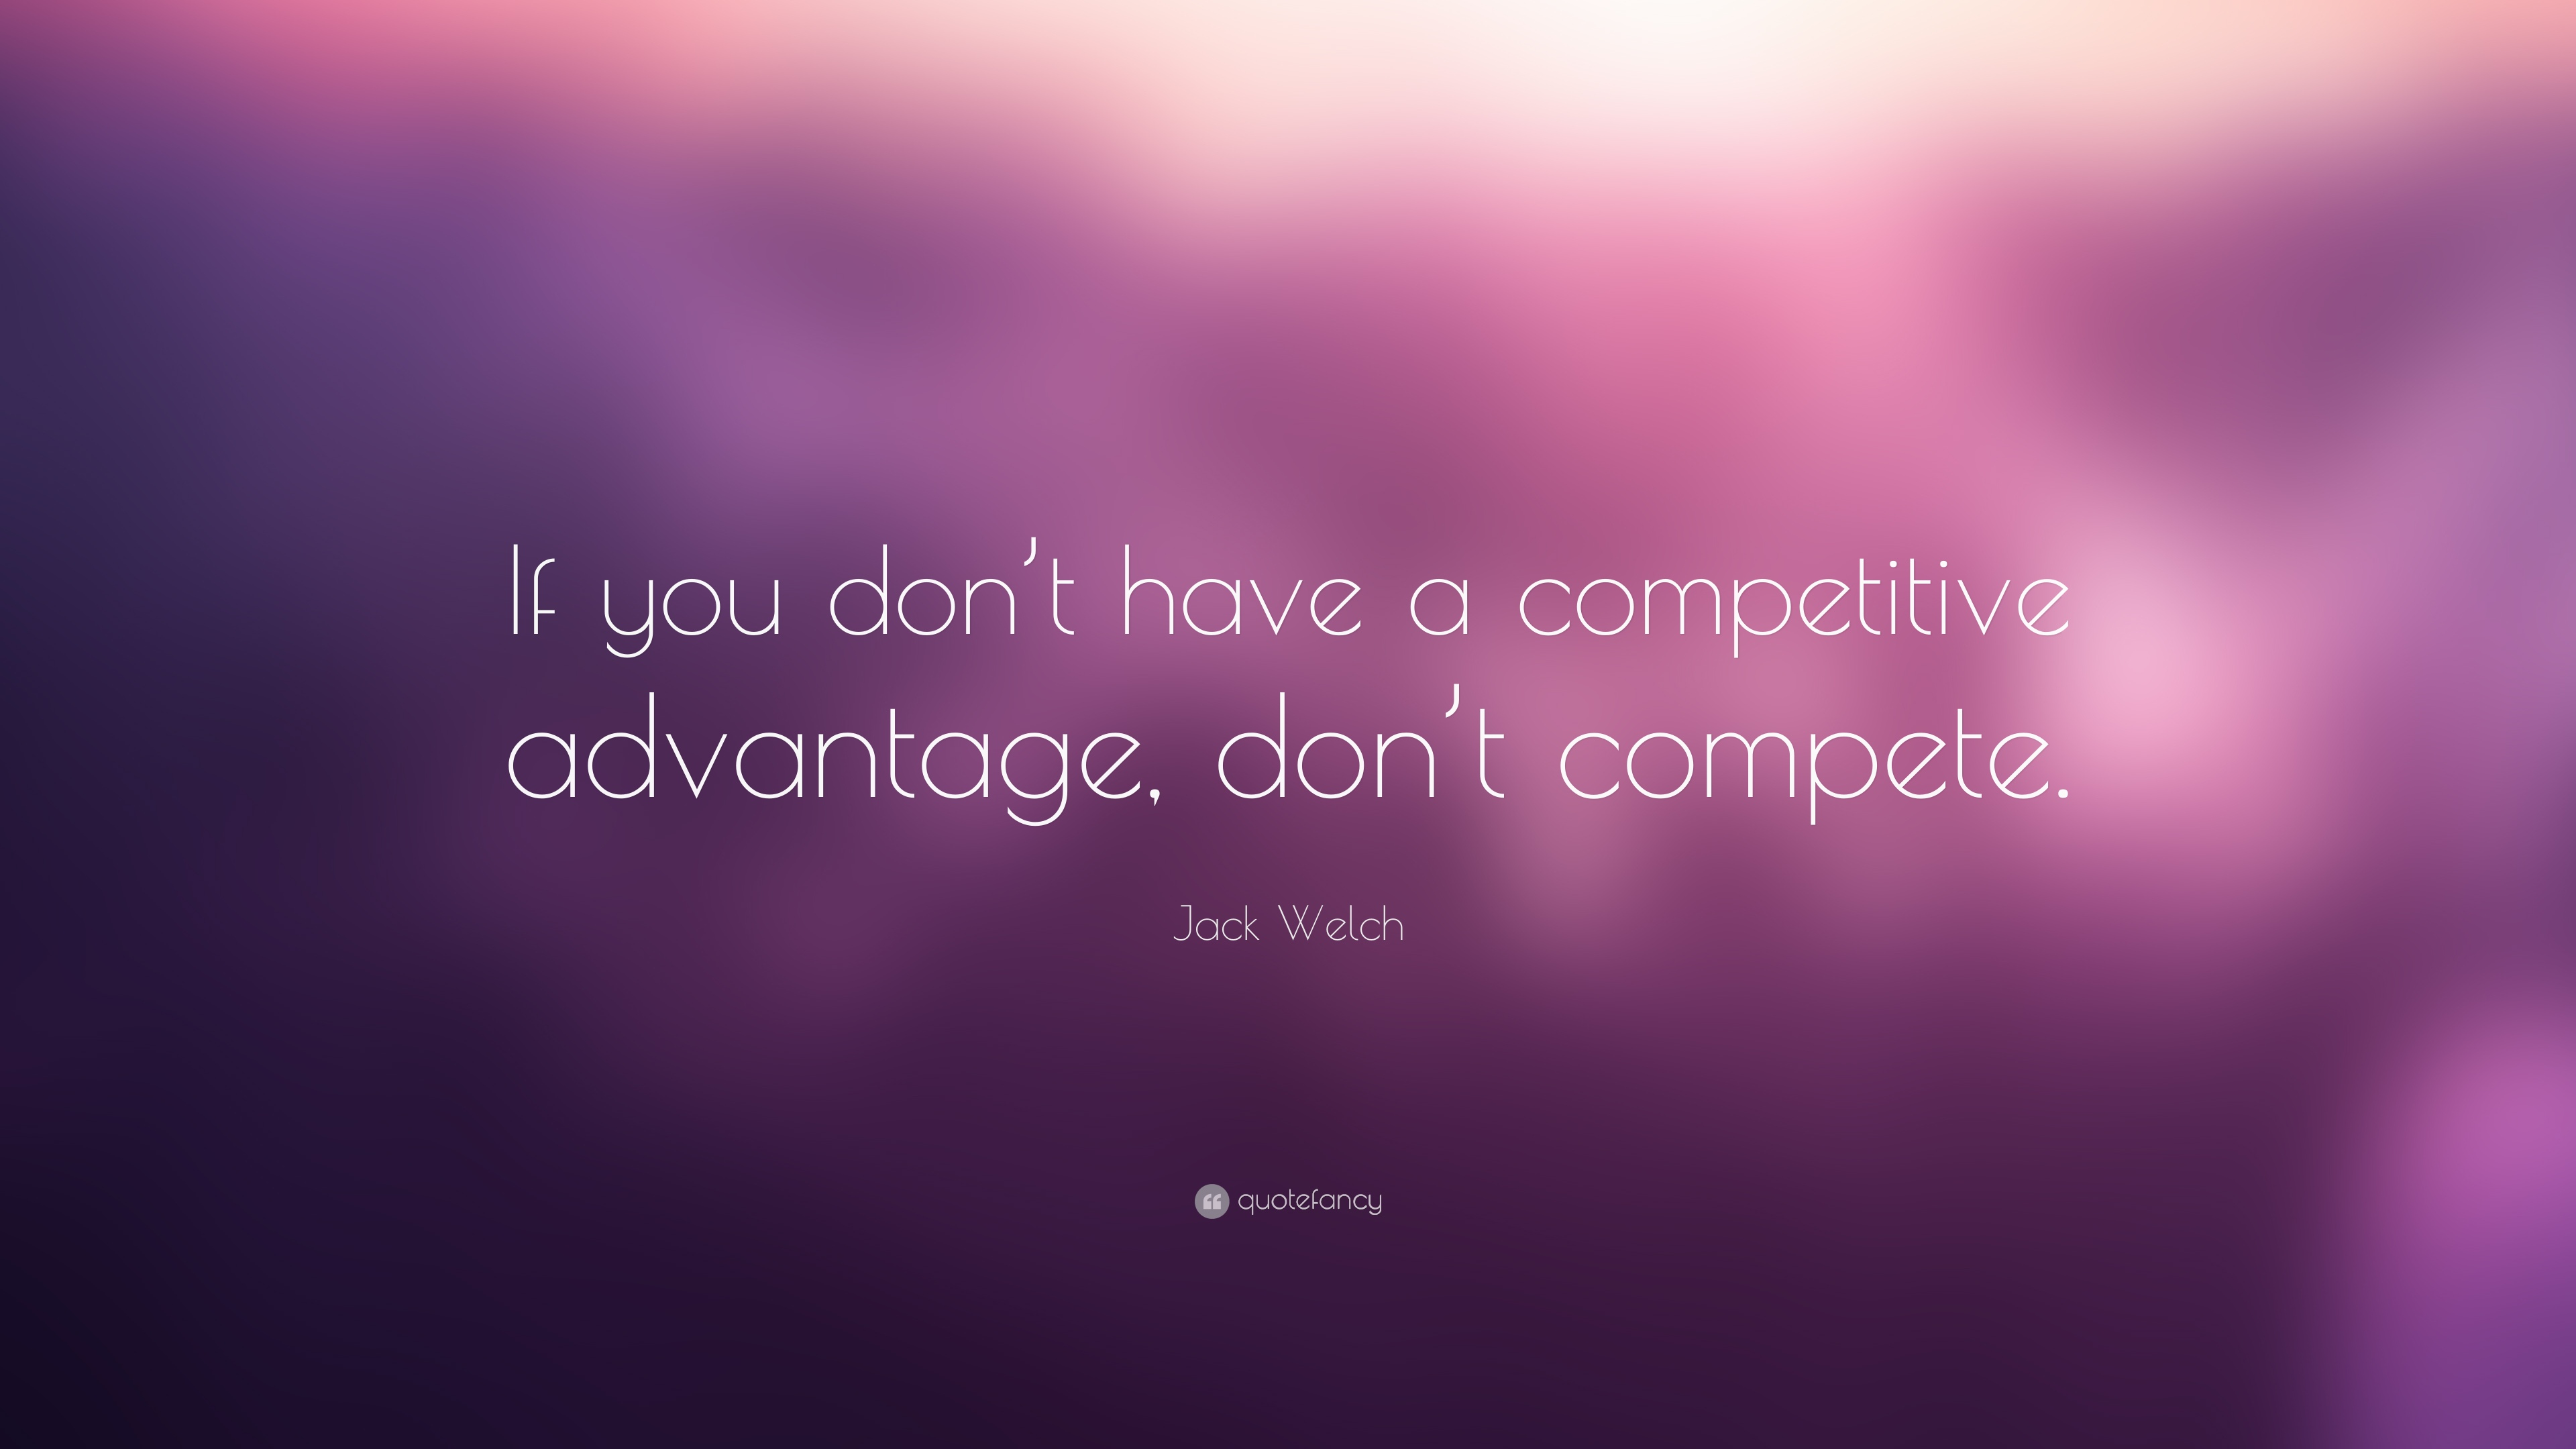 Business Quotes Wallpapers For Desktop Motivational Success Jack Welch Quote If You Don T Have A Competitive